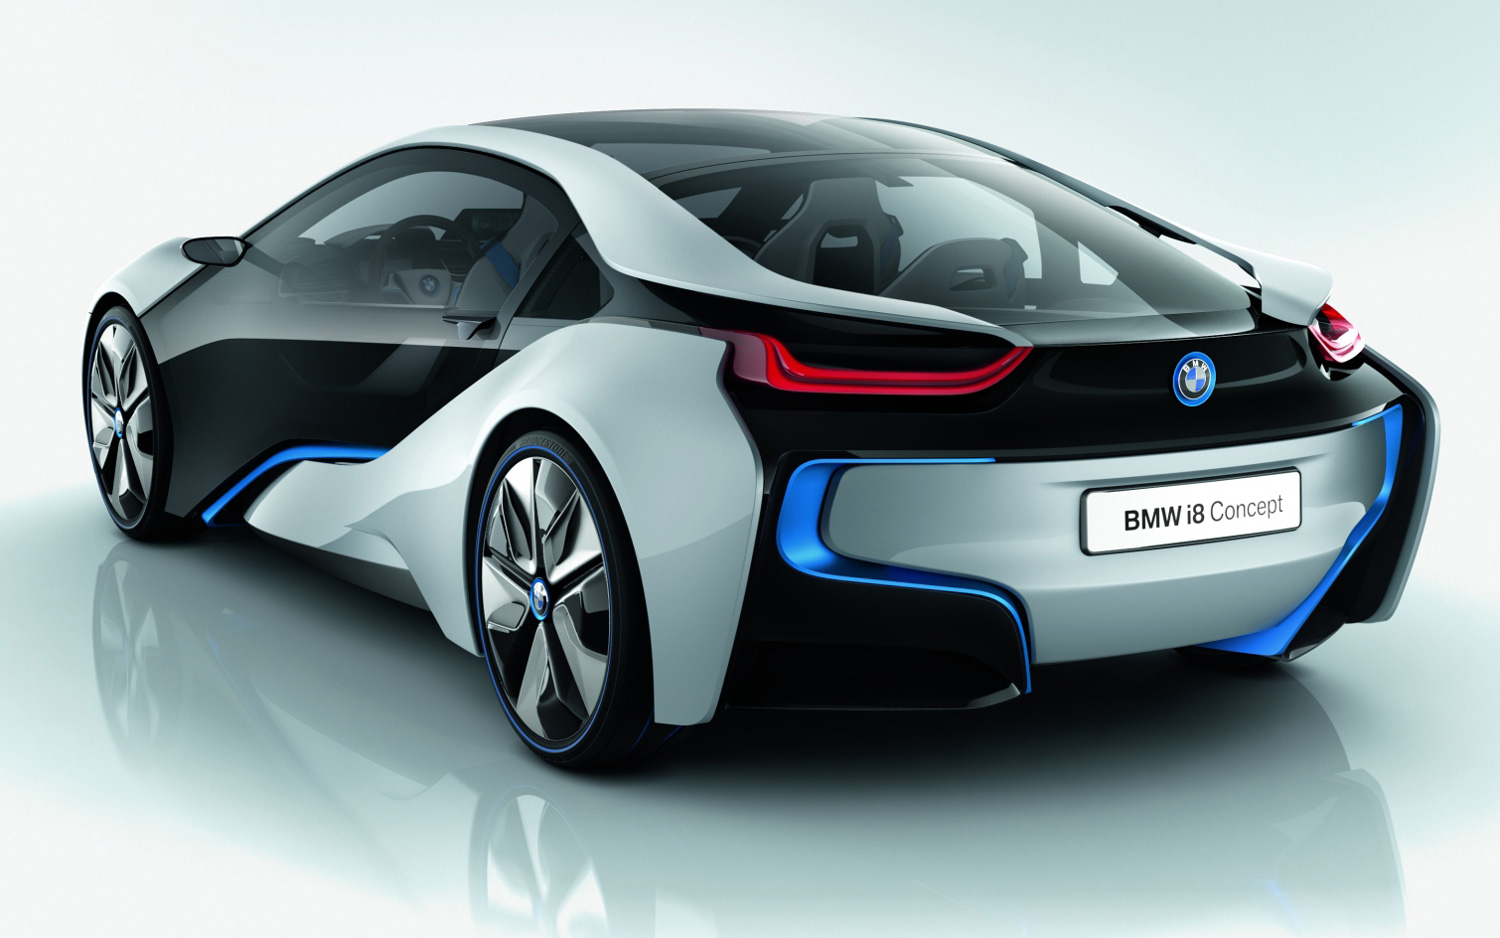 How Much Is A New Bmw Car Battery